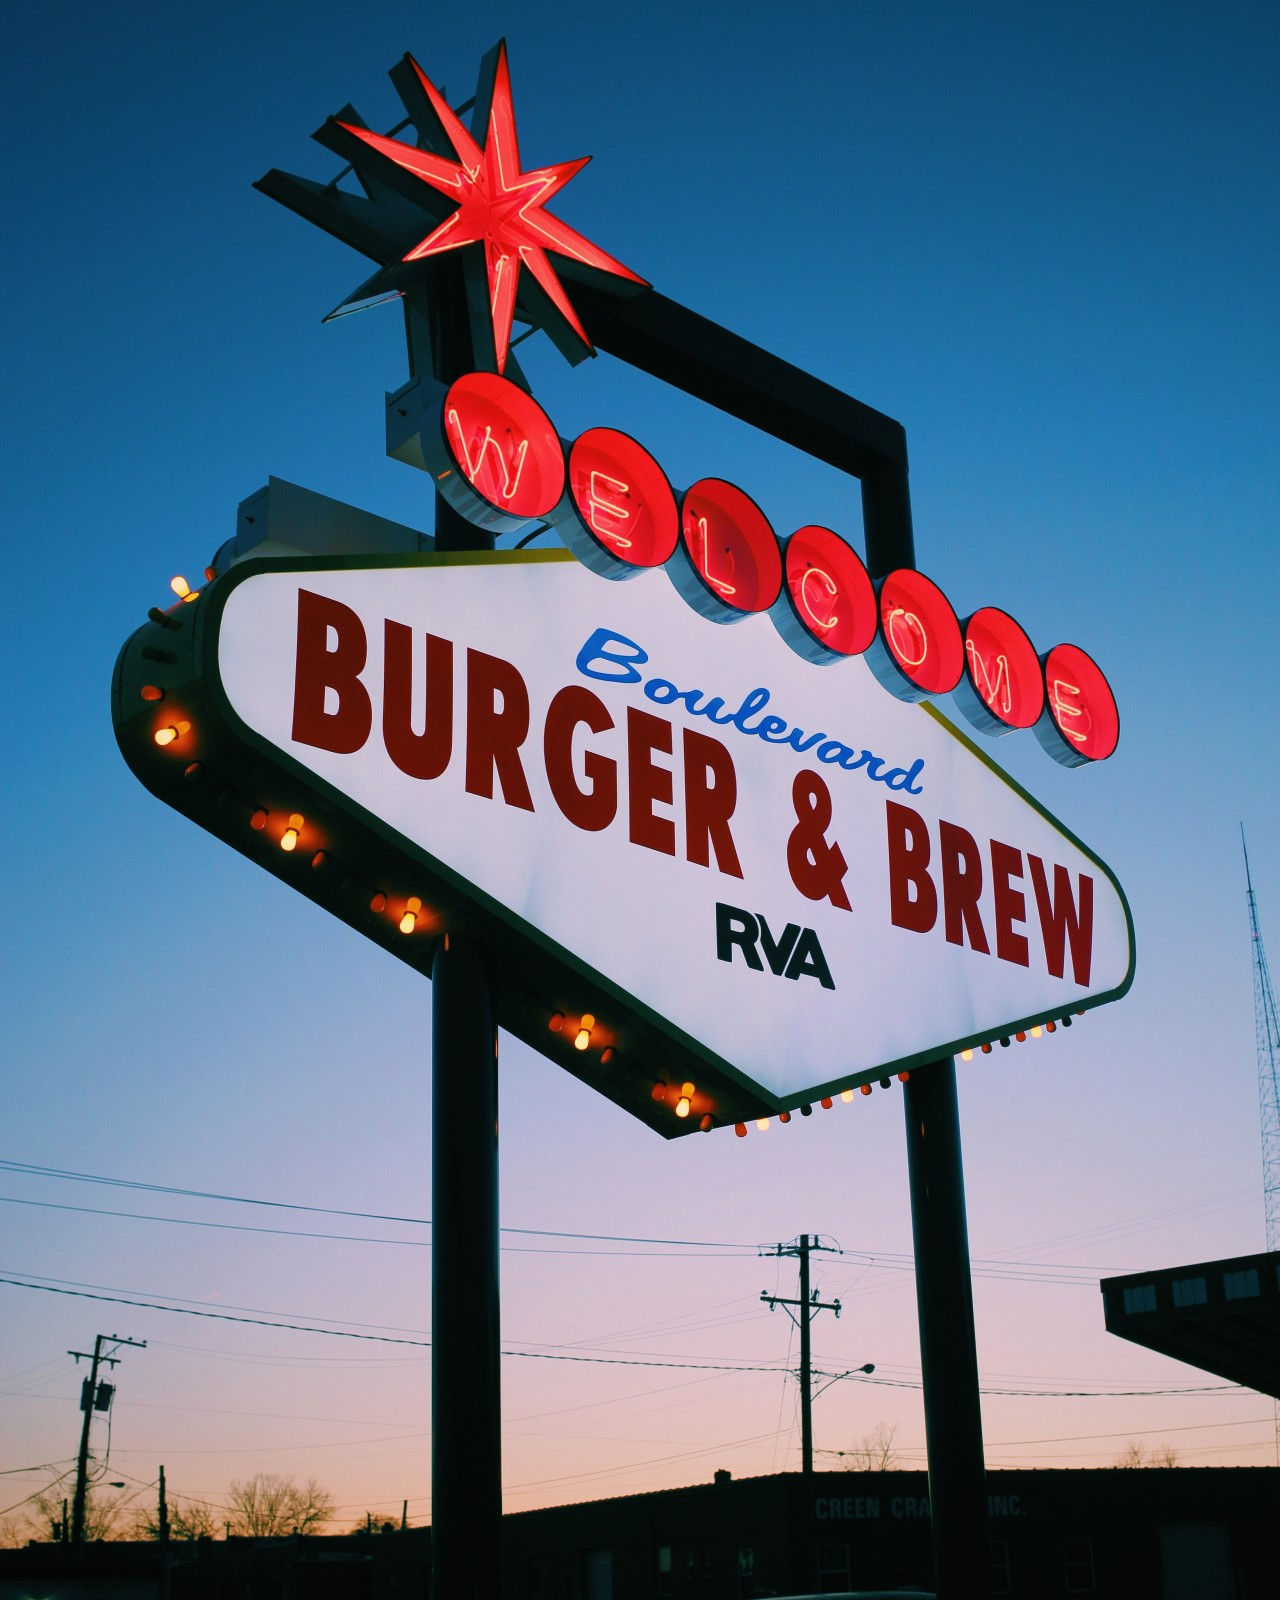 Sunset Burger & Brew